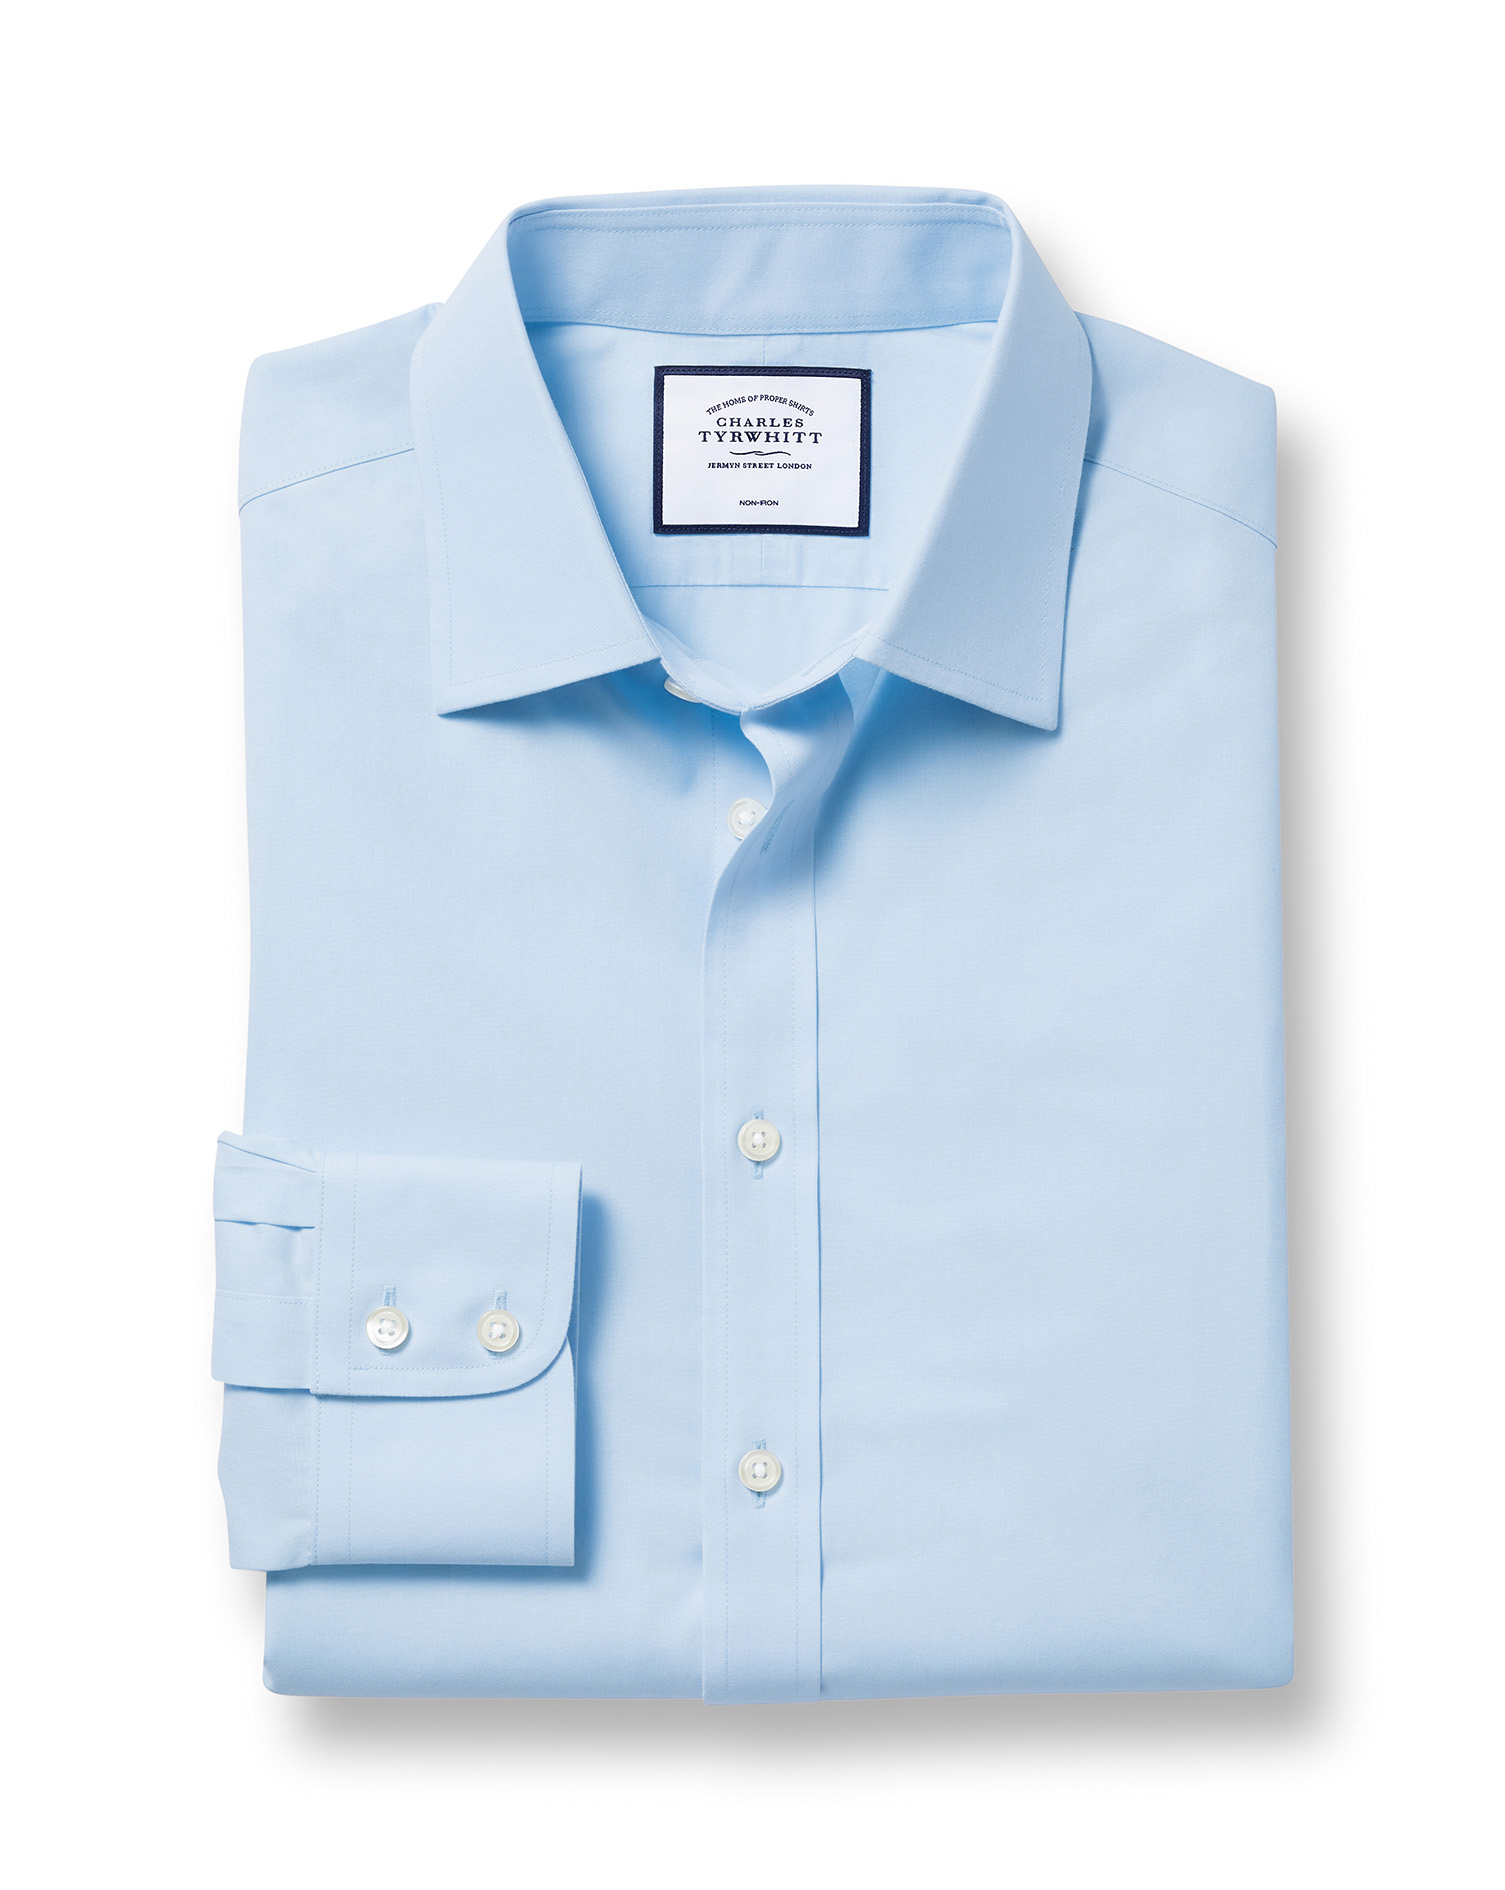 Slim Fit Non-Iron Poplin Sky Blue Cotton Formal Shirt Double Cuff Size 16.5/33 by Charles Tyrwhitt